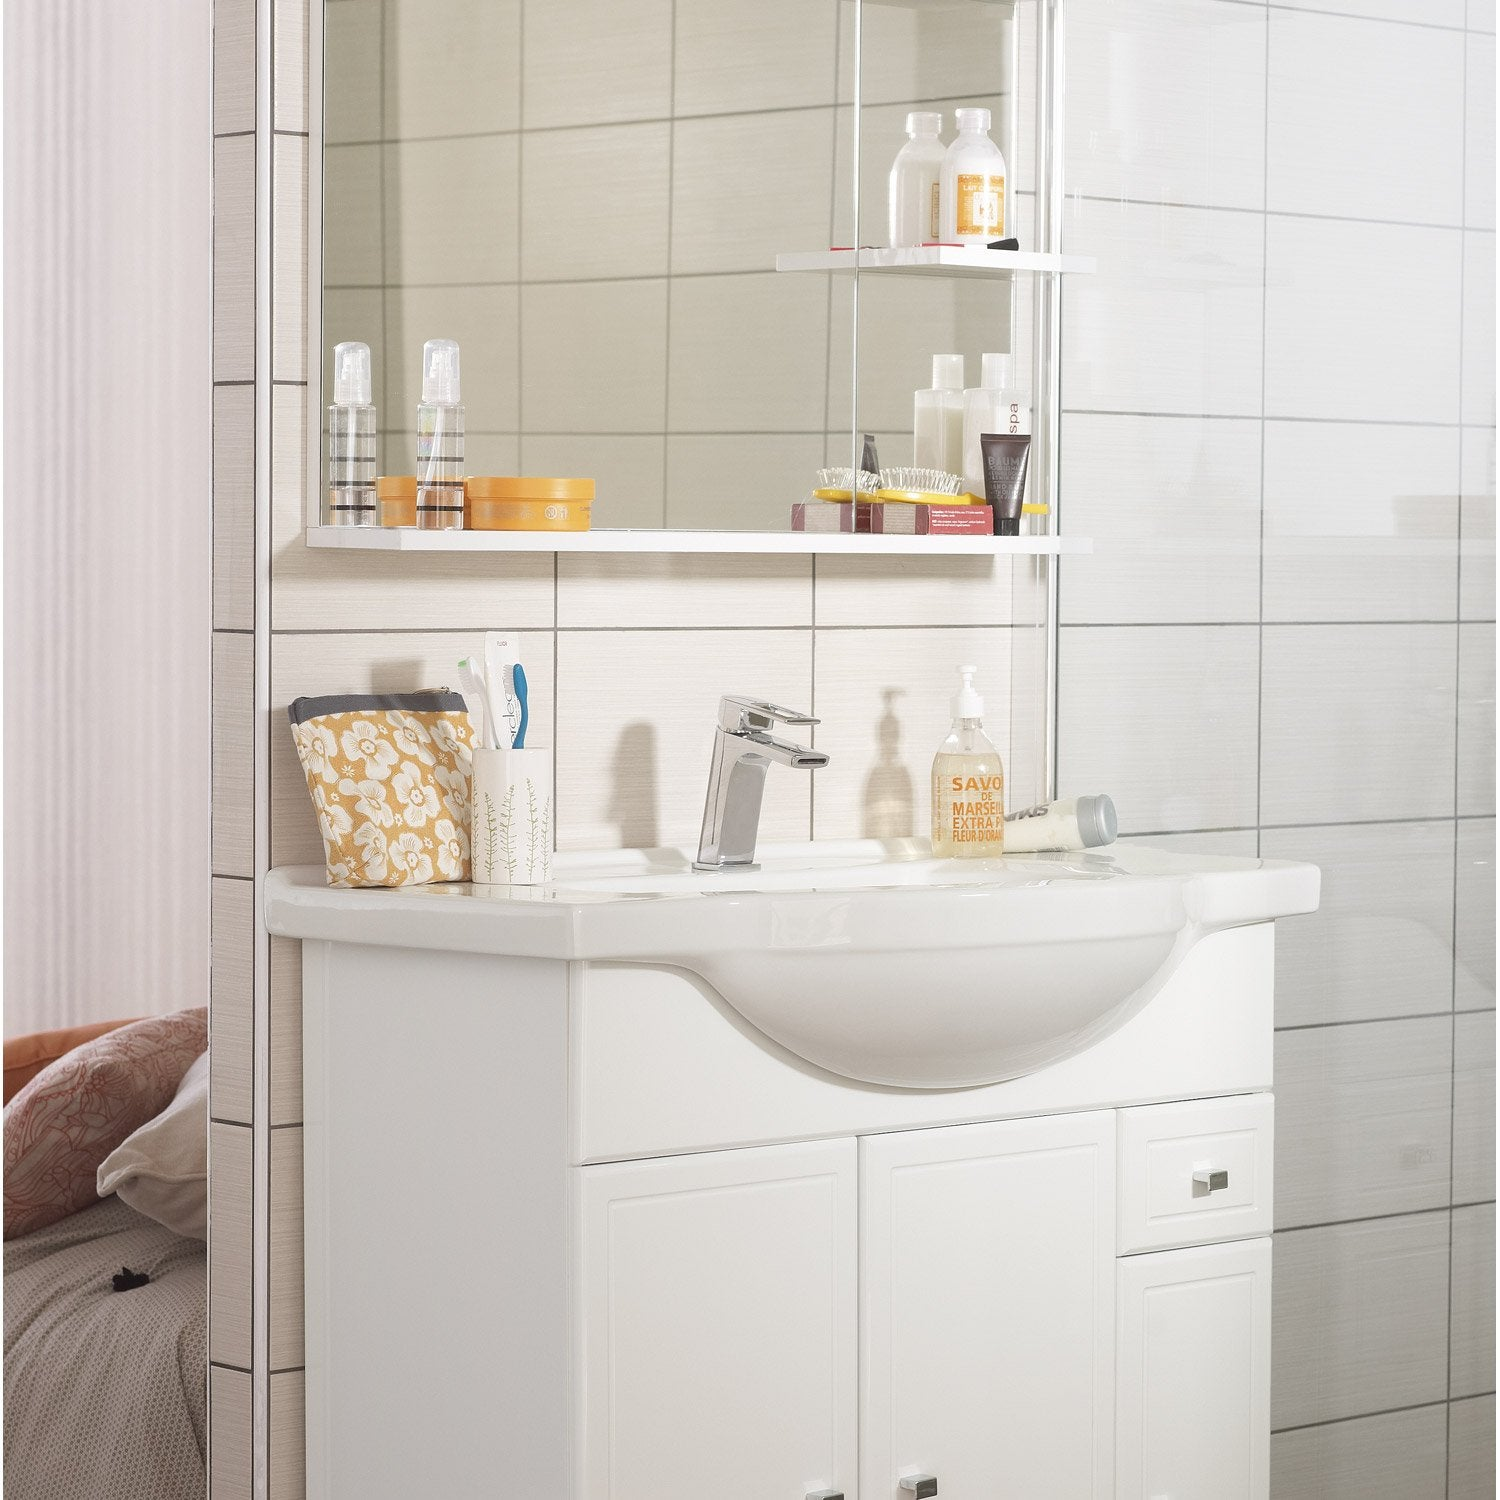 Meuble vasque 85 cm galice leroy merlin for Meuble salle de bain double vasque leroy merlin